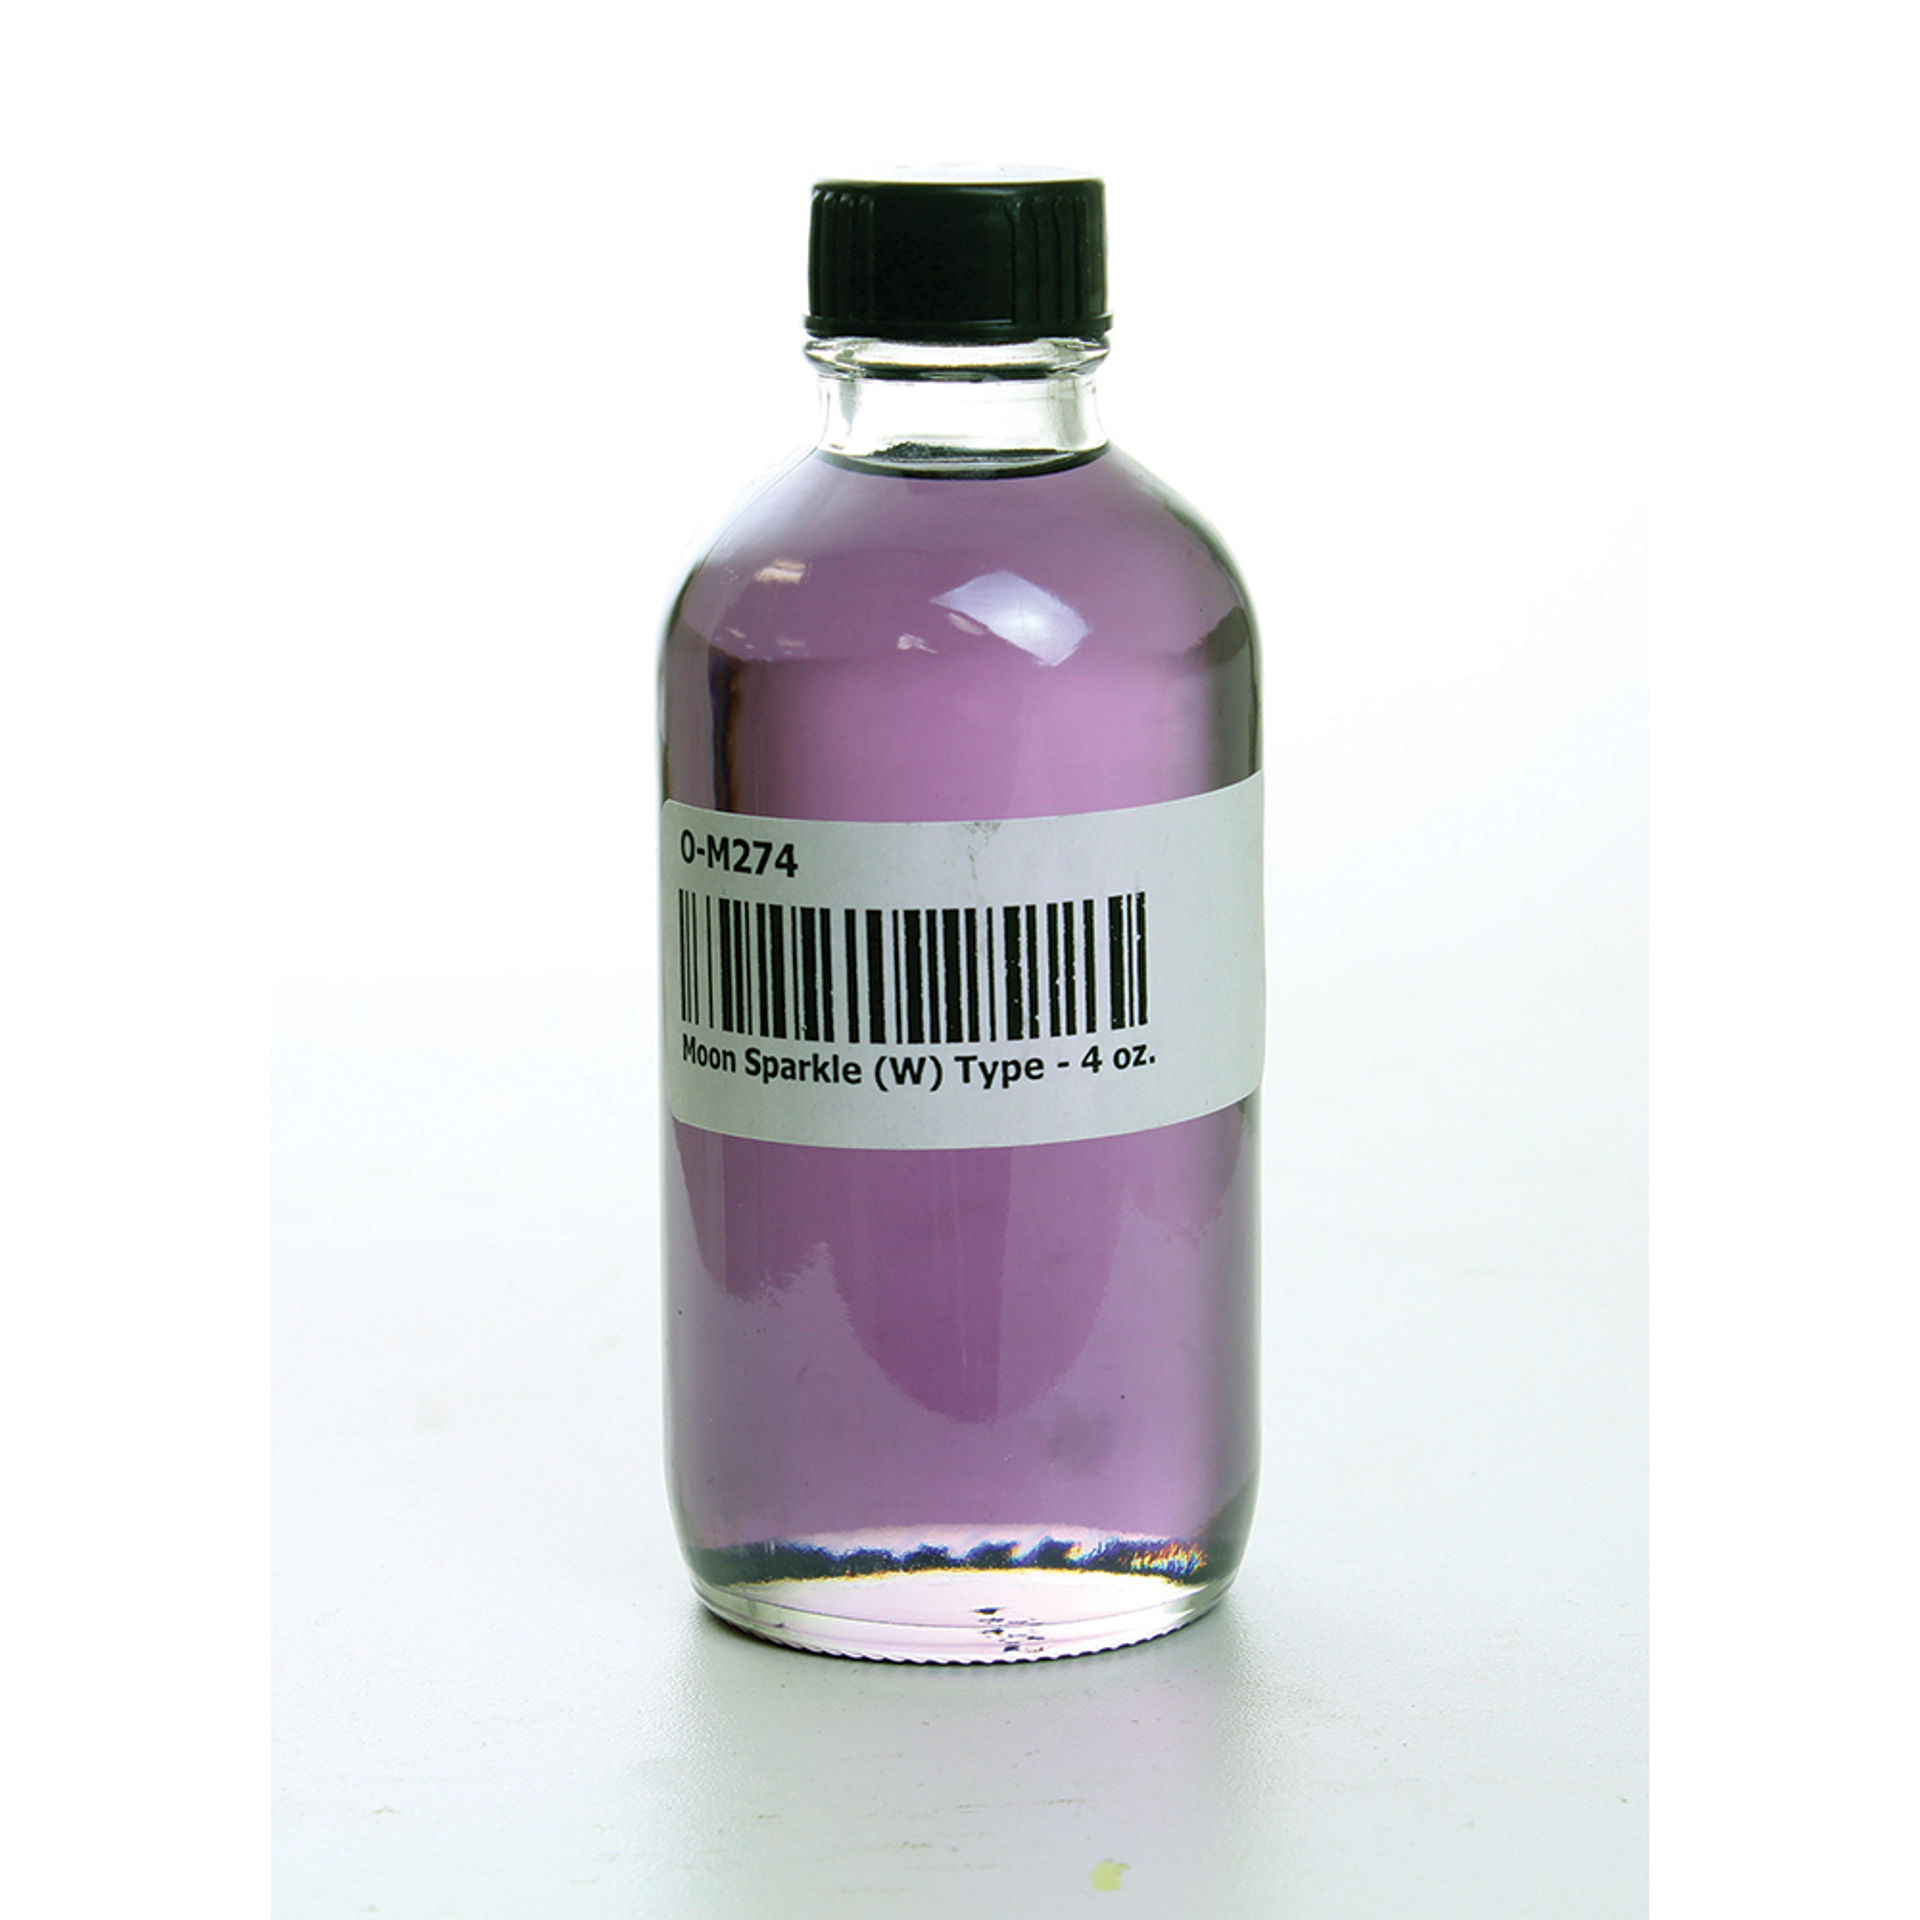 Picture of Moon Sparkle (W) Type - 4 oz.